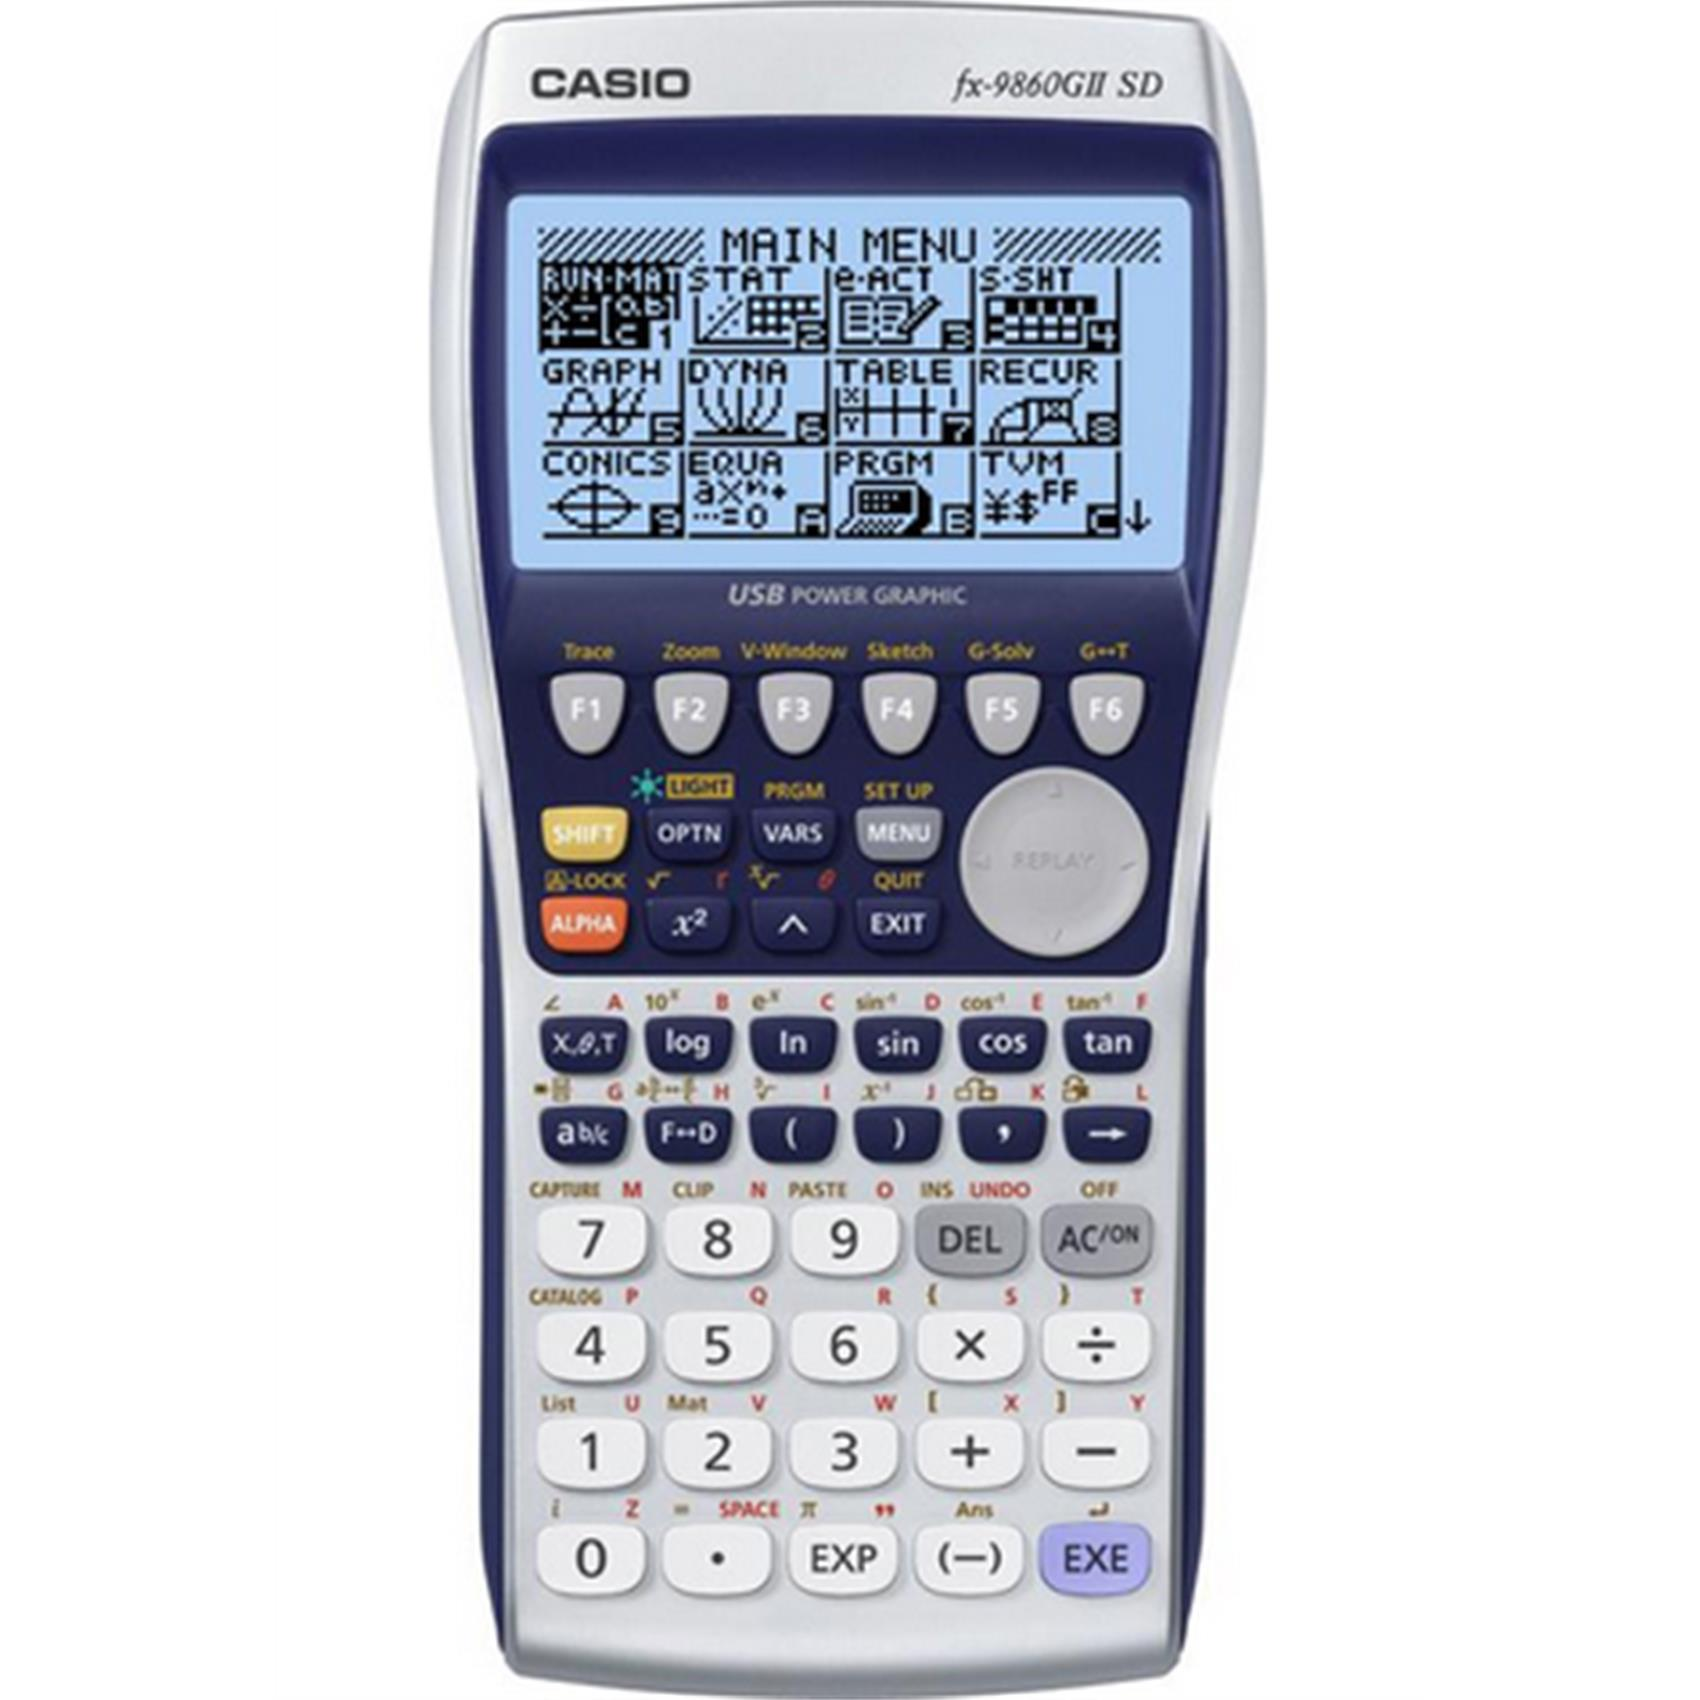 CASIO FX-9860GIISD GRAPHIC